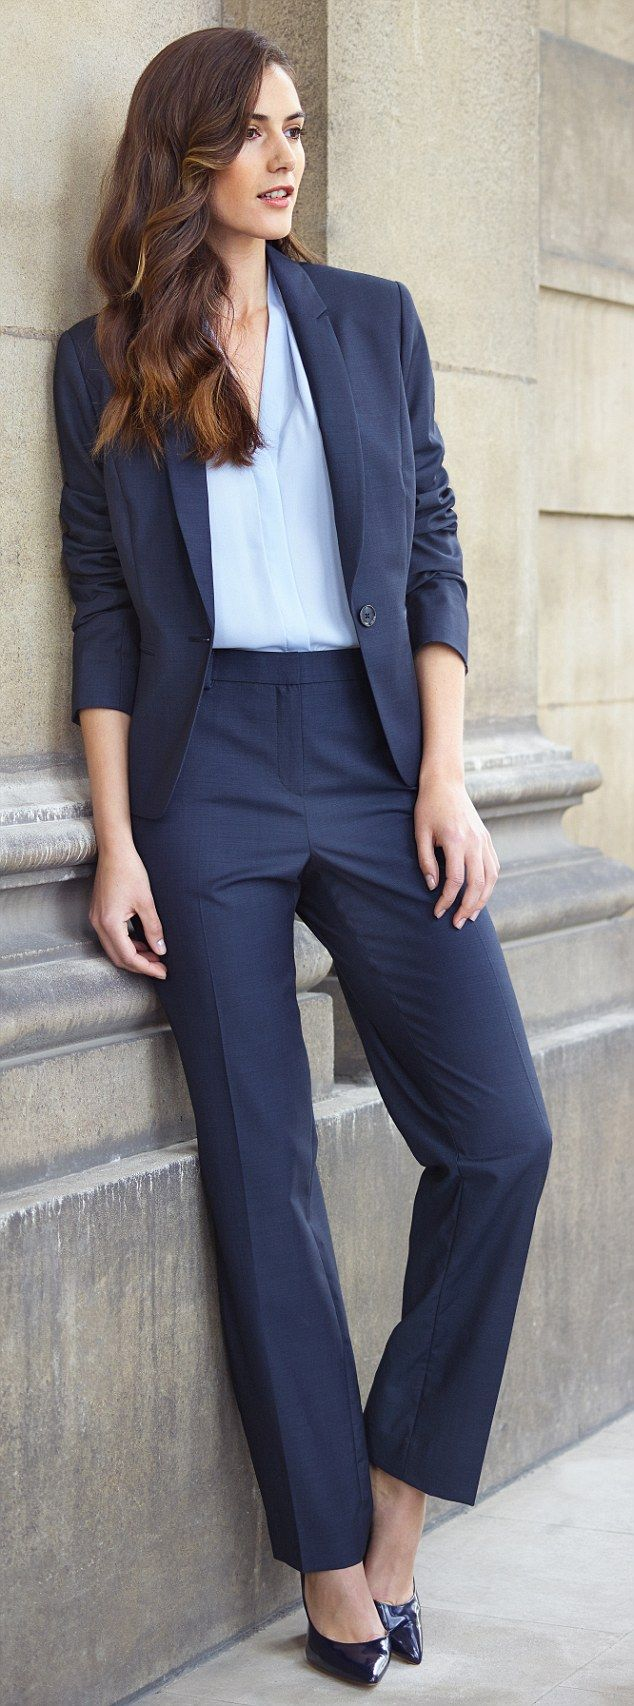 Brilliant Popular Navy Blue Pants SuitBuy Cheap Navy Blue Pants Suit Lots From